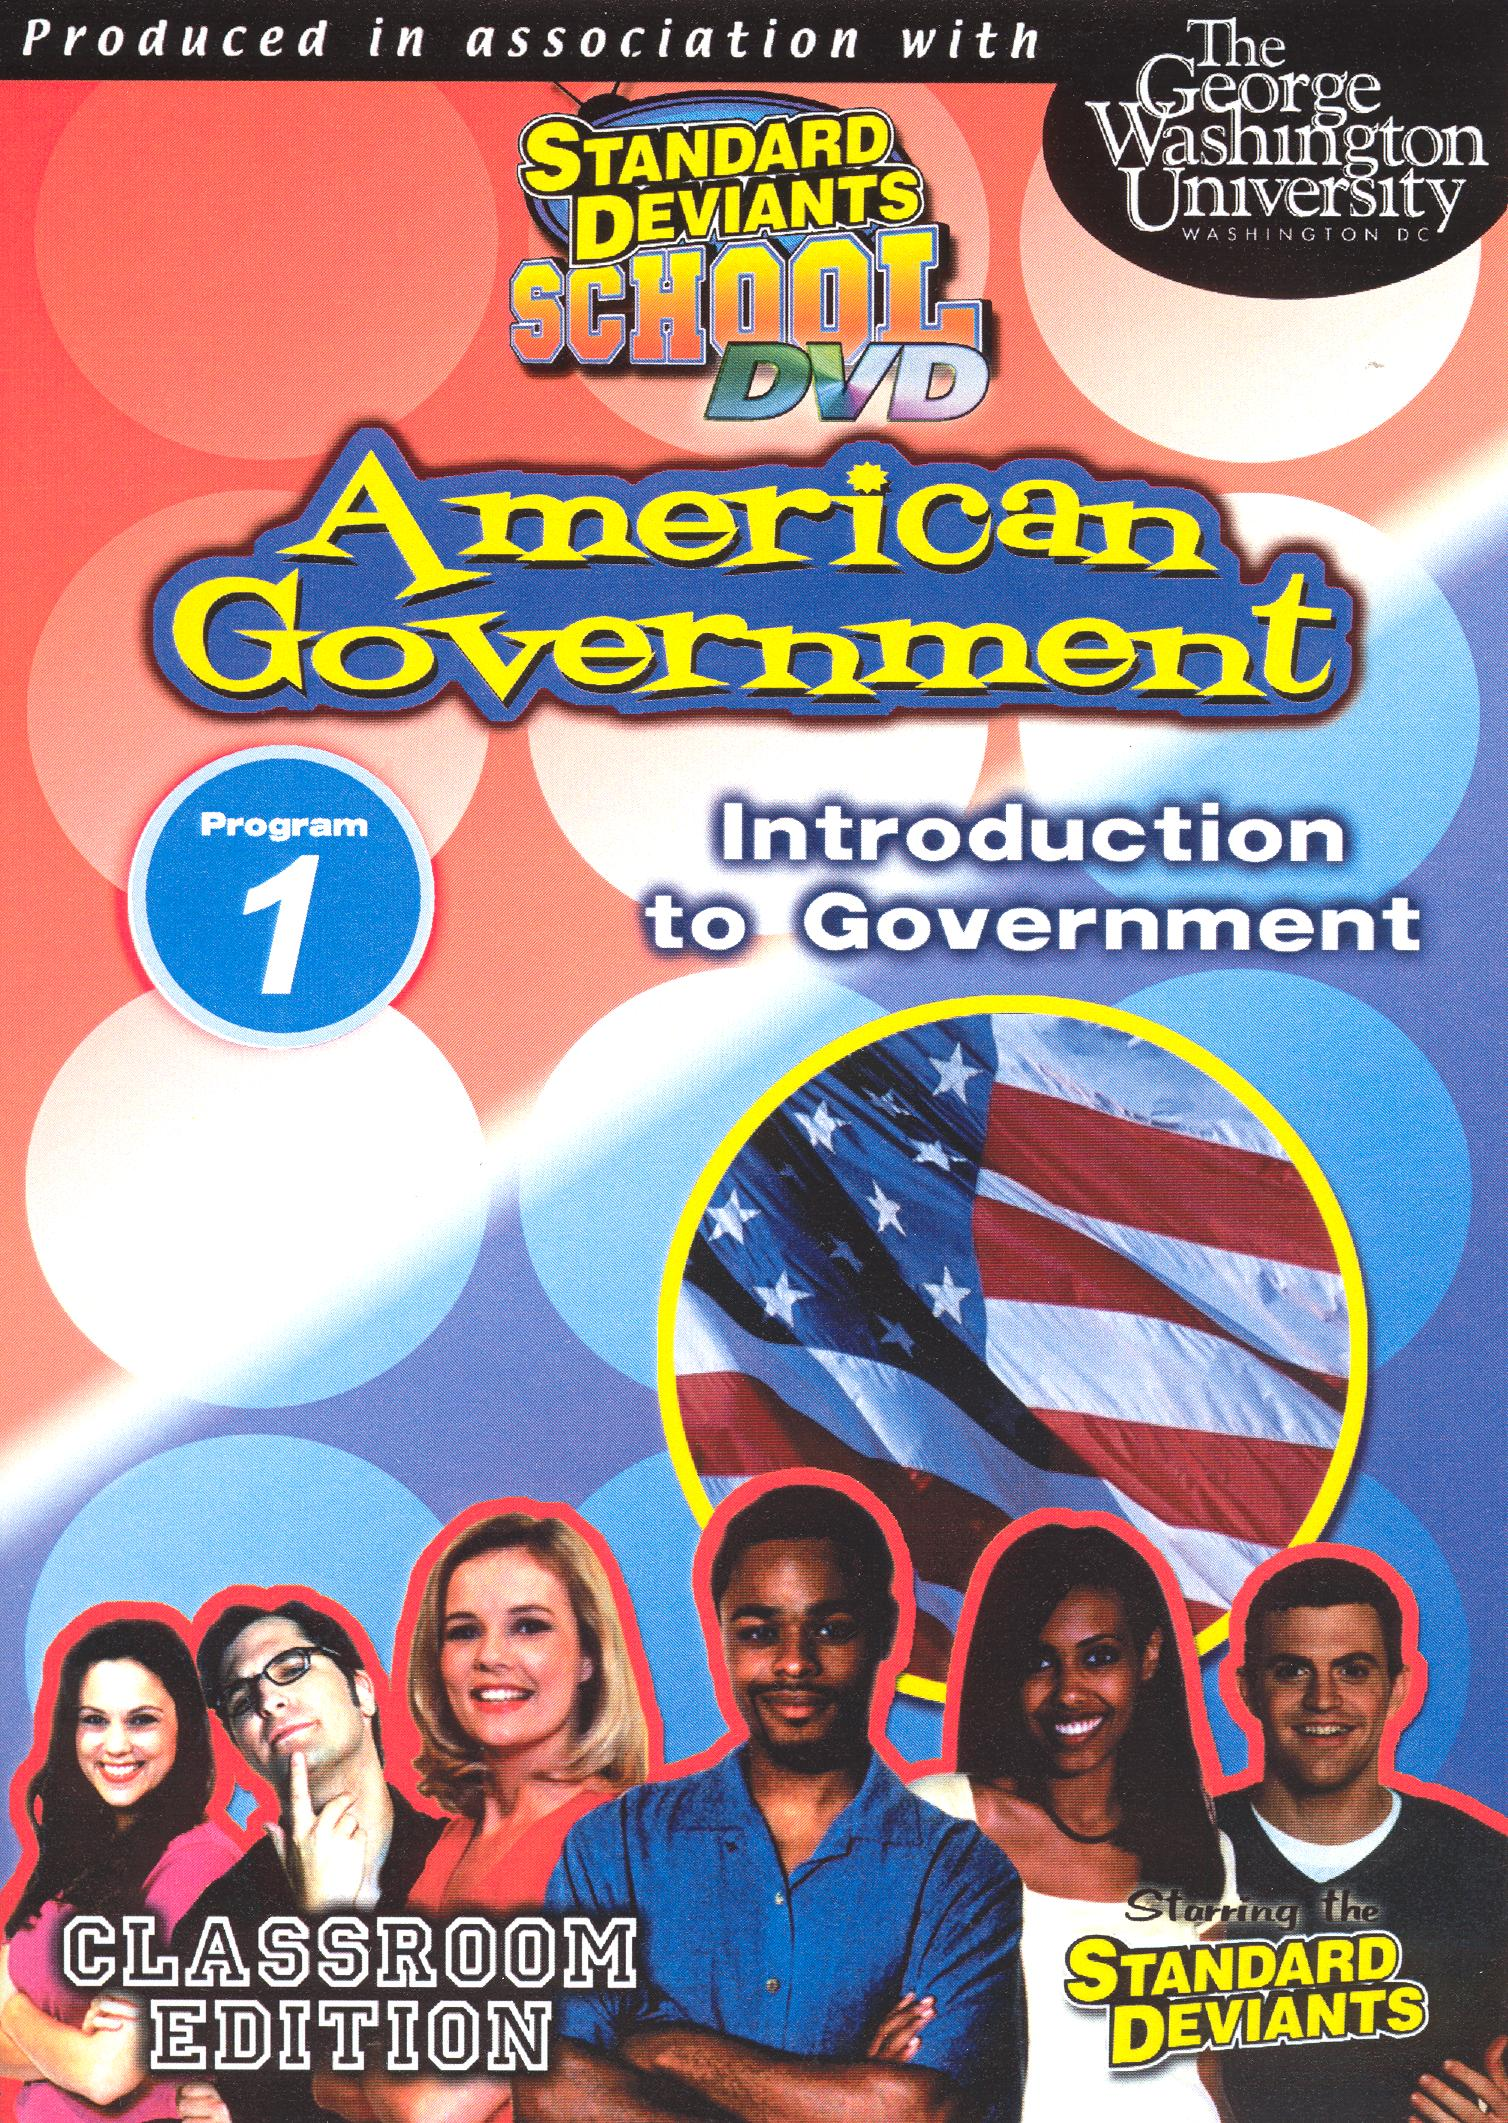 Standard Deviants School: American Government, Module 1 - Introduction to Government